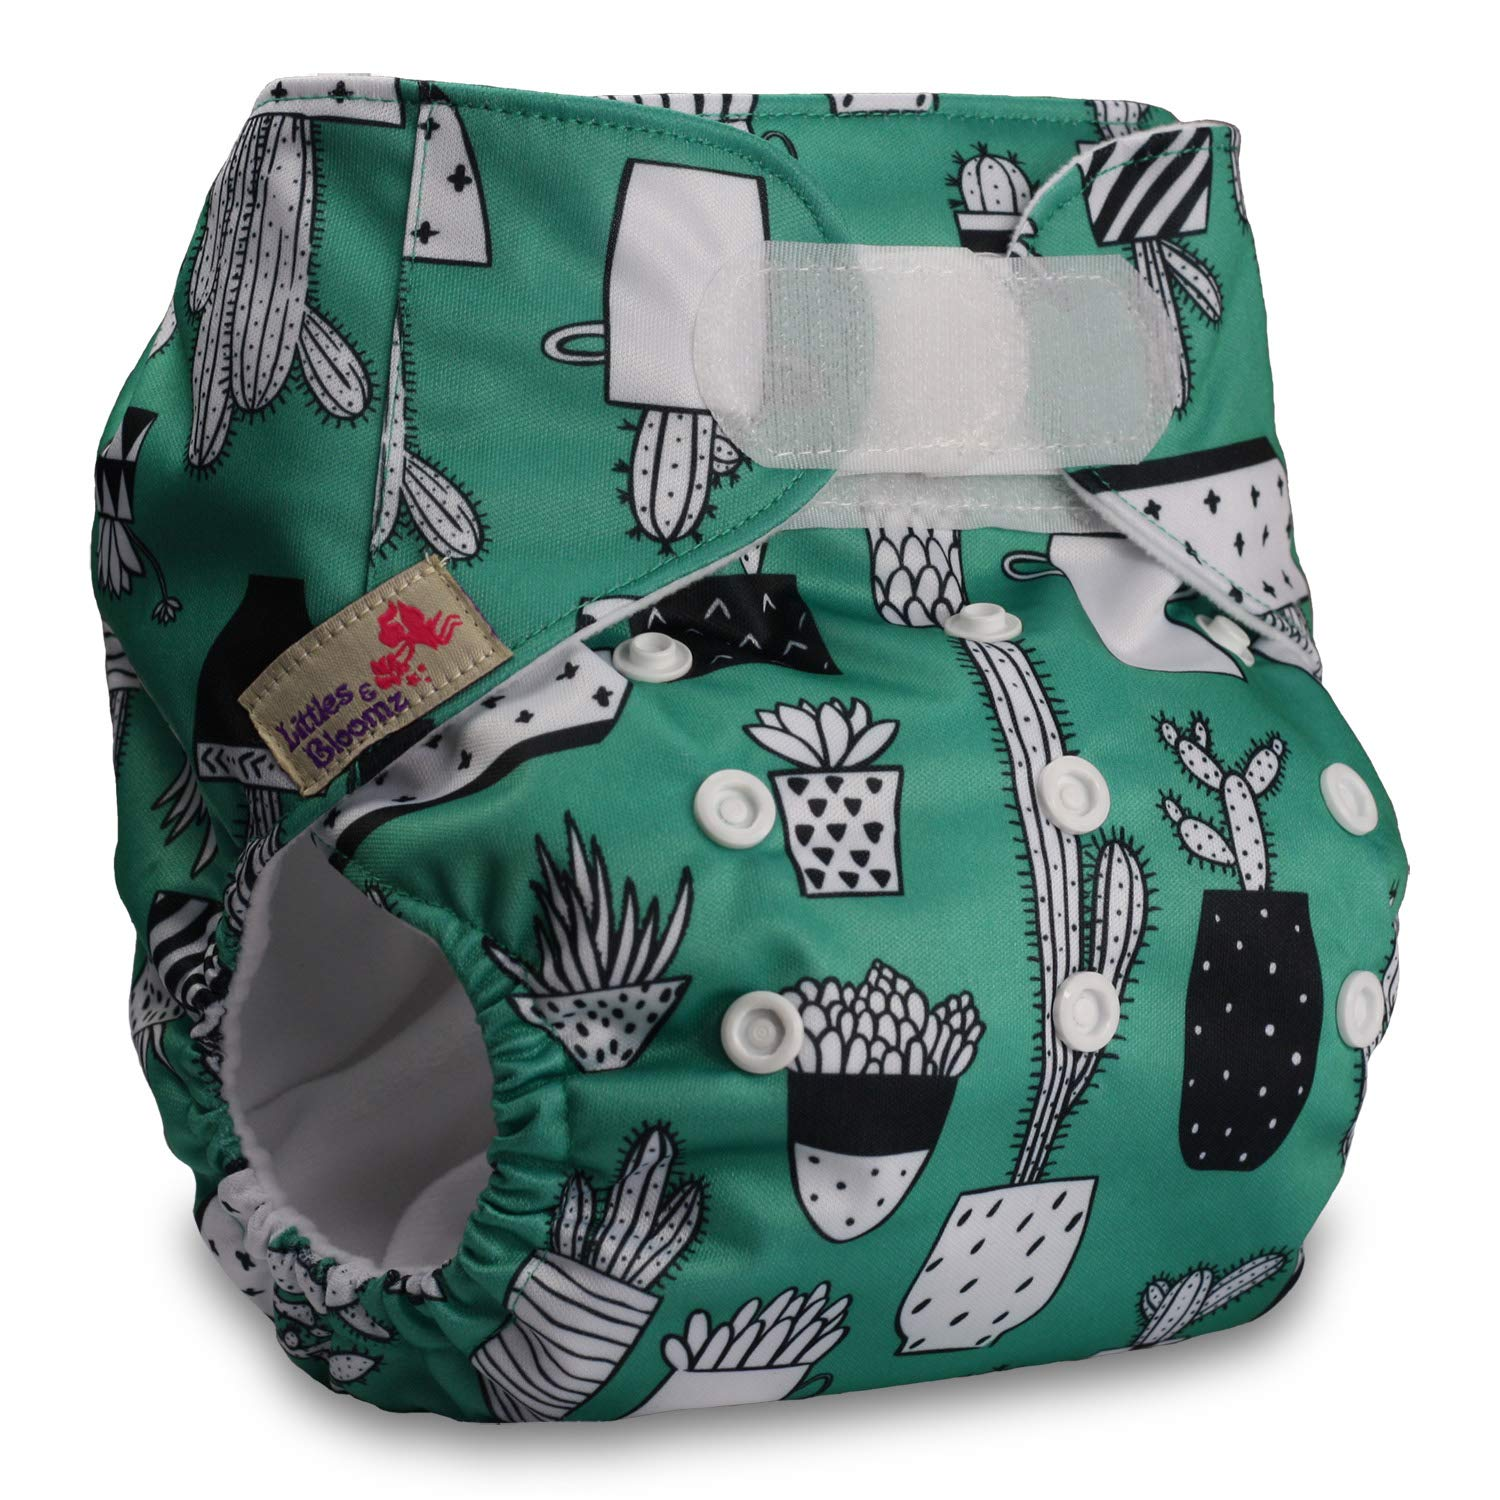 Pattern 45 with 2 Bamboo Inserts Reusable Pocket Cloth Nappy Set of 1 Fastener: Hook-Loop Littles /& Bloomz